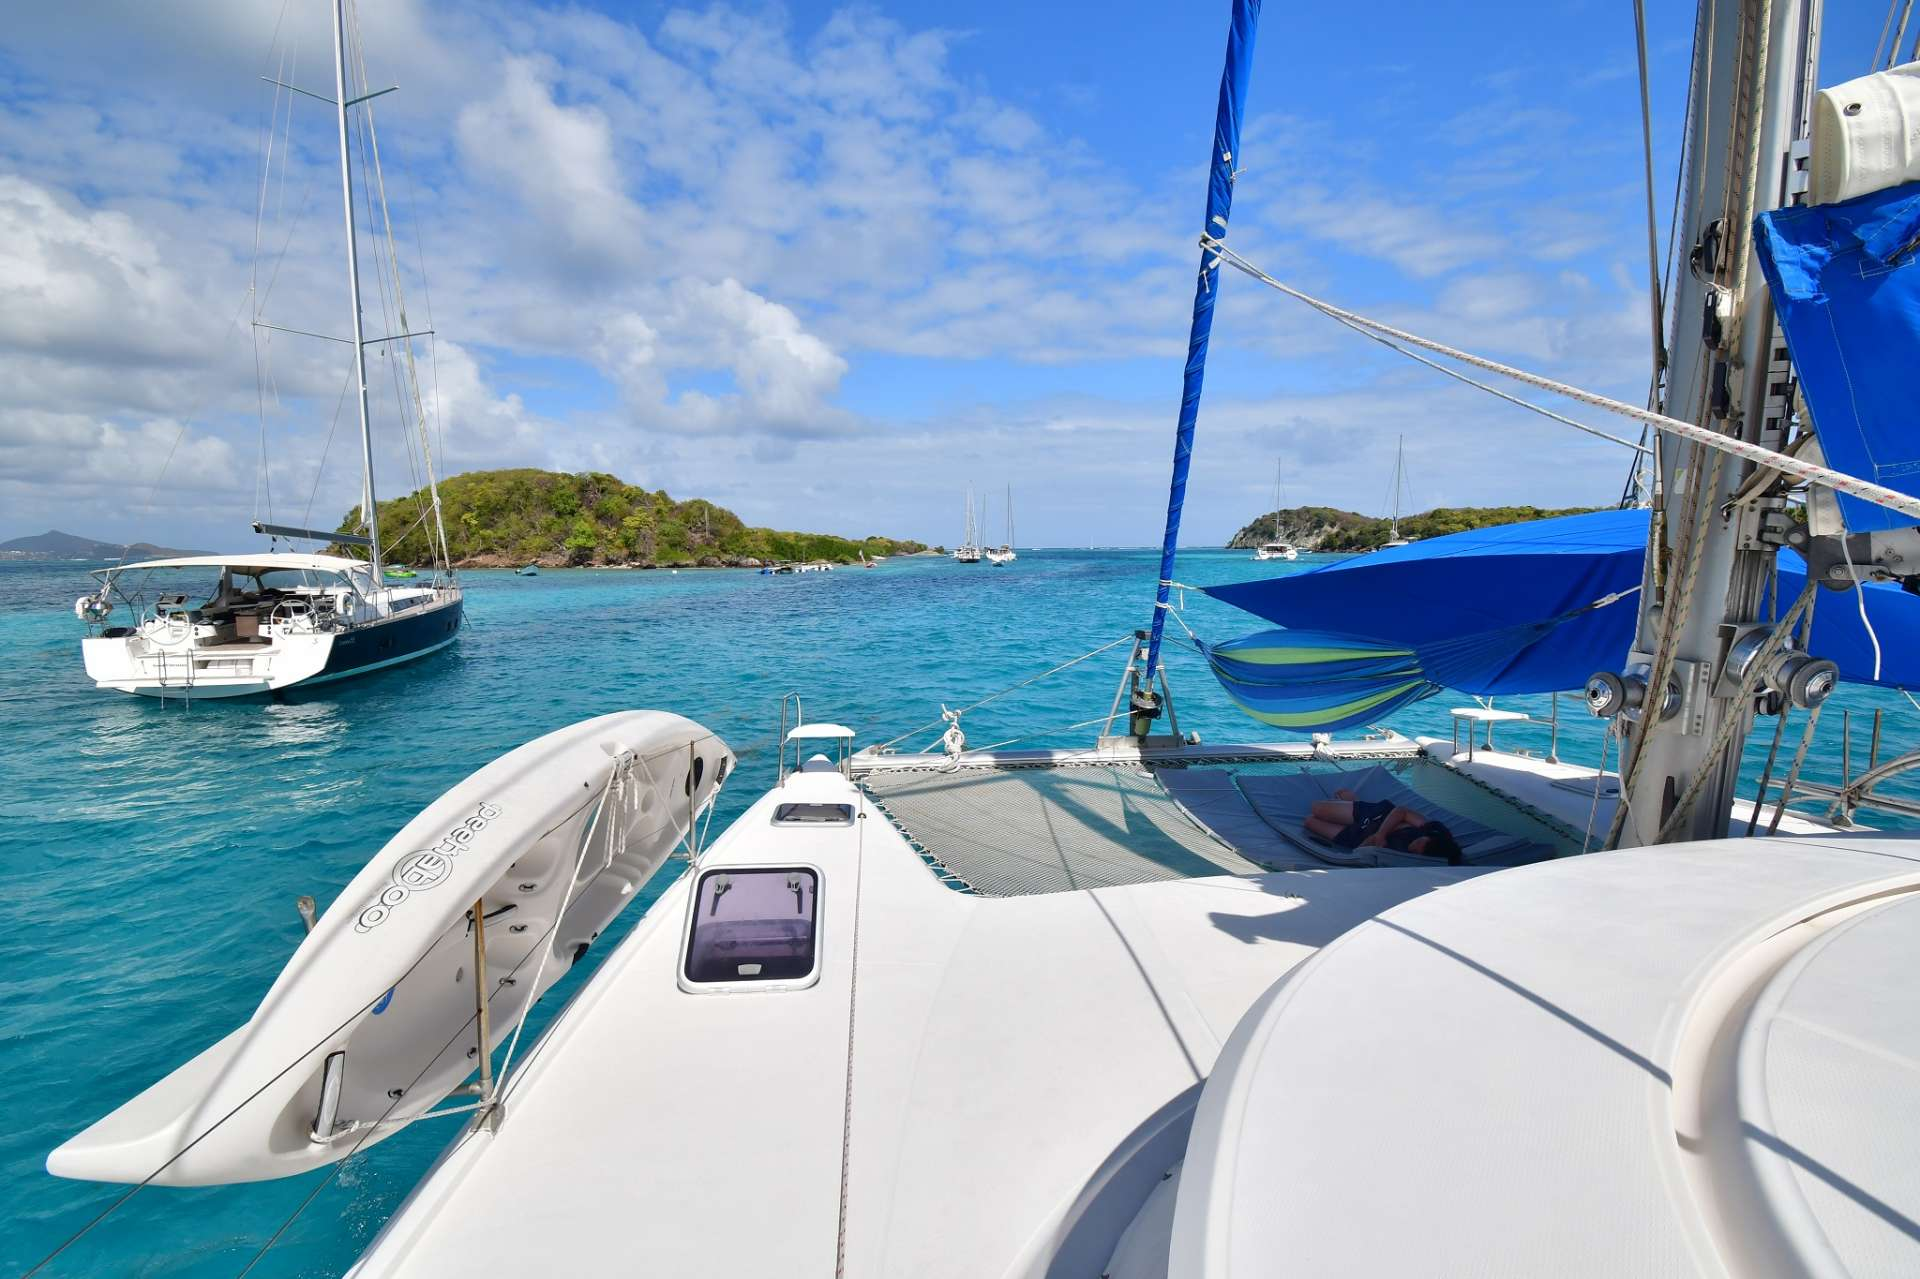 Shaded foredeck perfect for napping